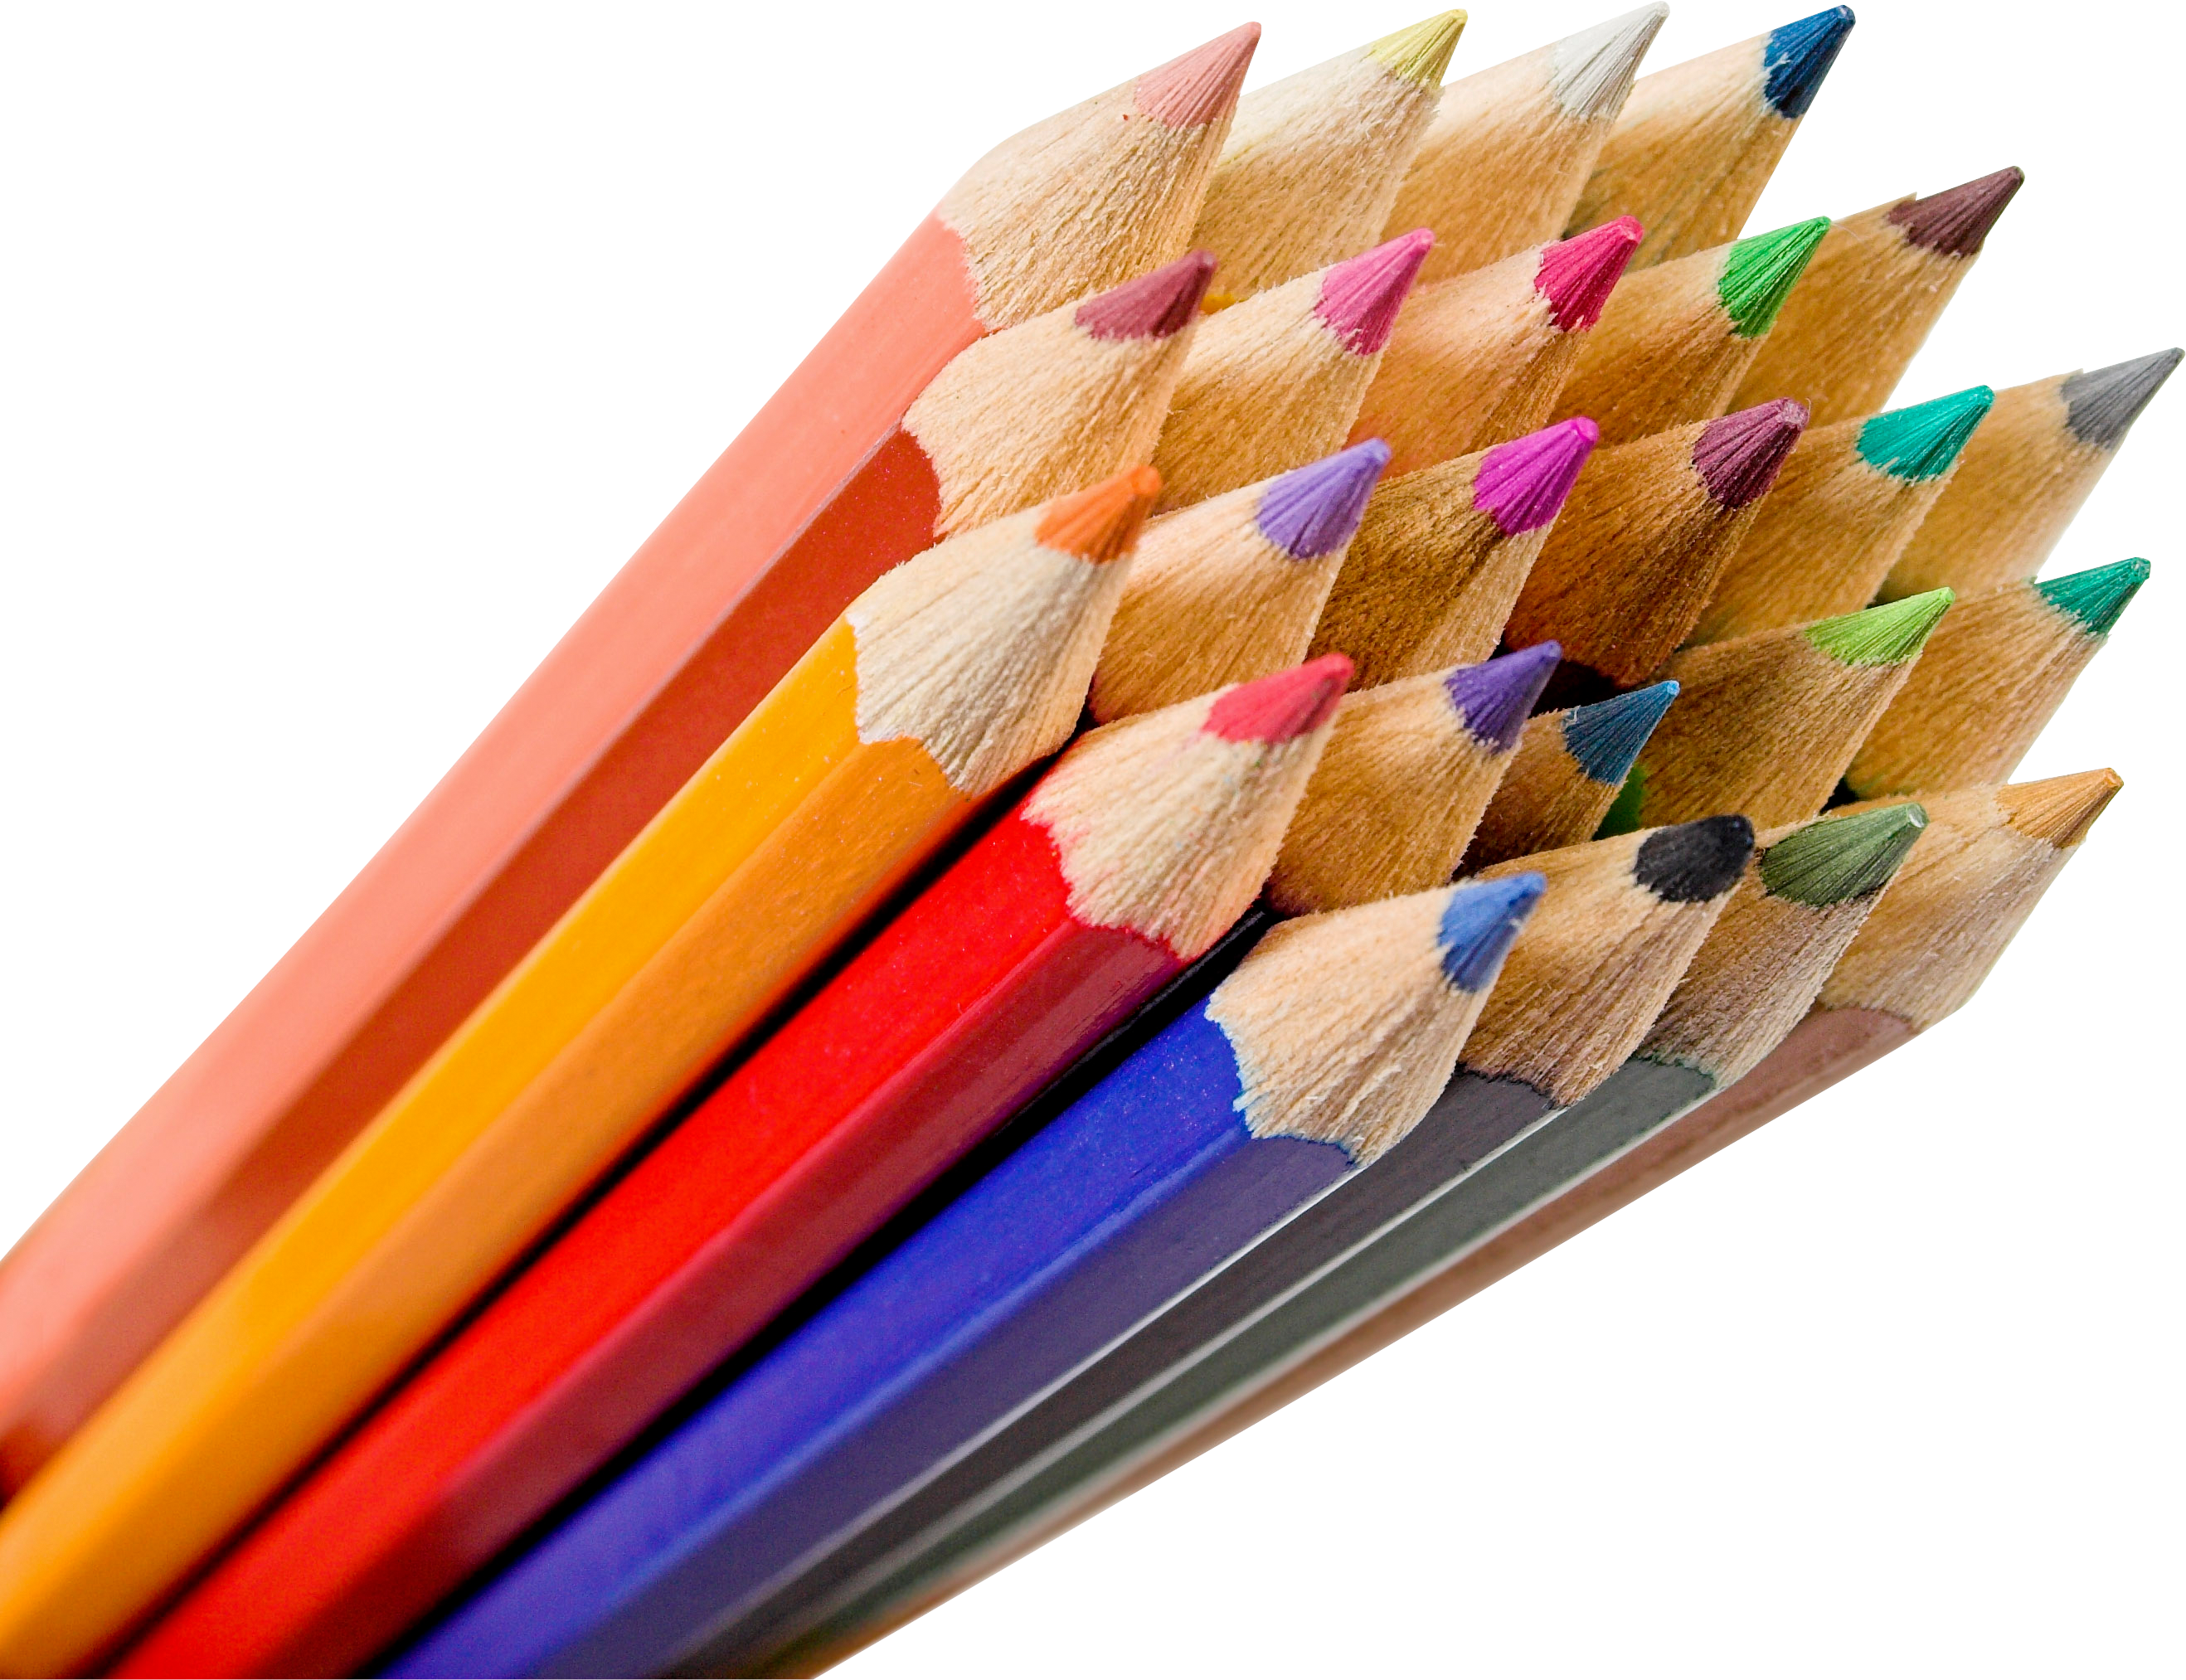 Eraser clipart pencil tip. Pencils fourteen isolated stock